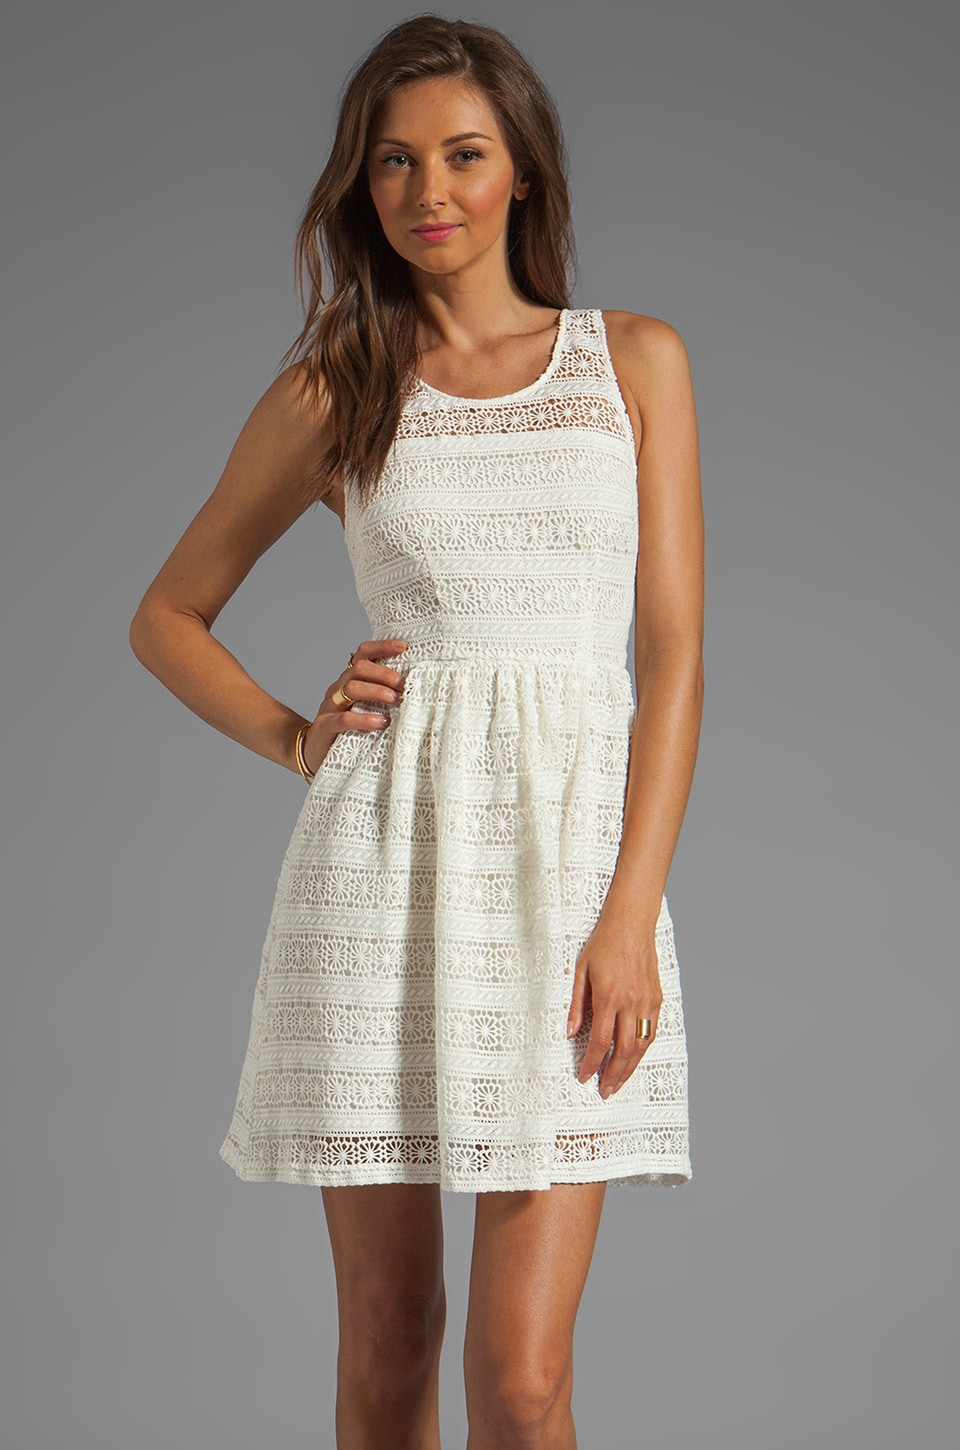 BB Dakota Jacynth Cotton Crochet Dress in Ivory